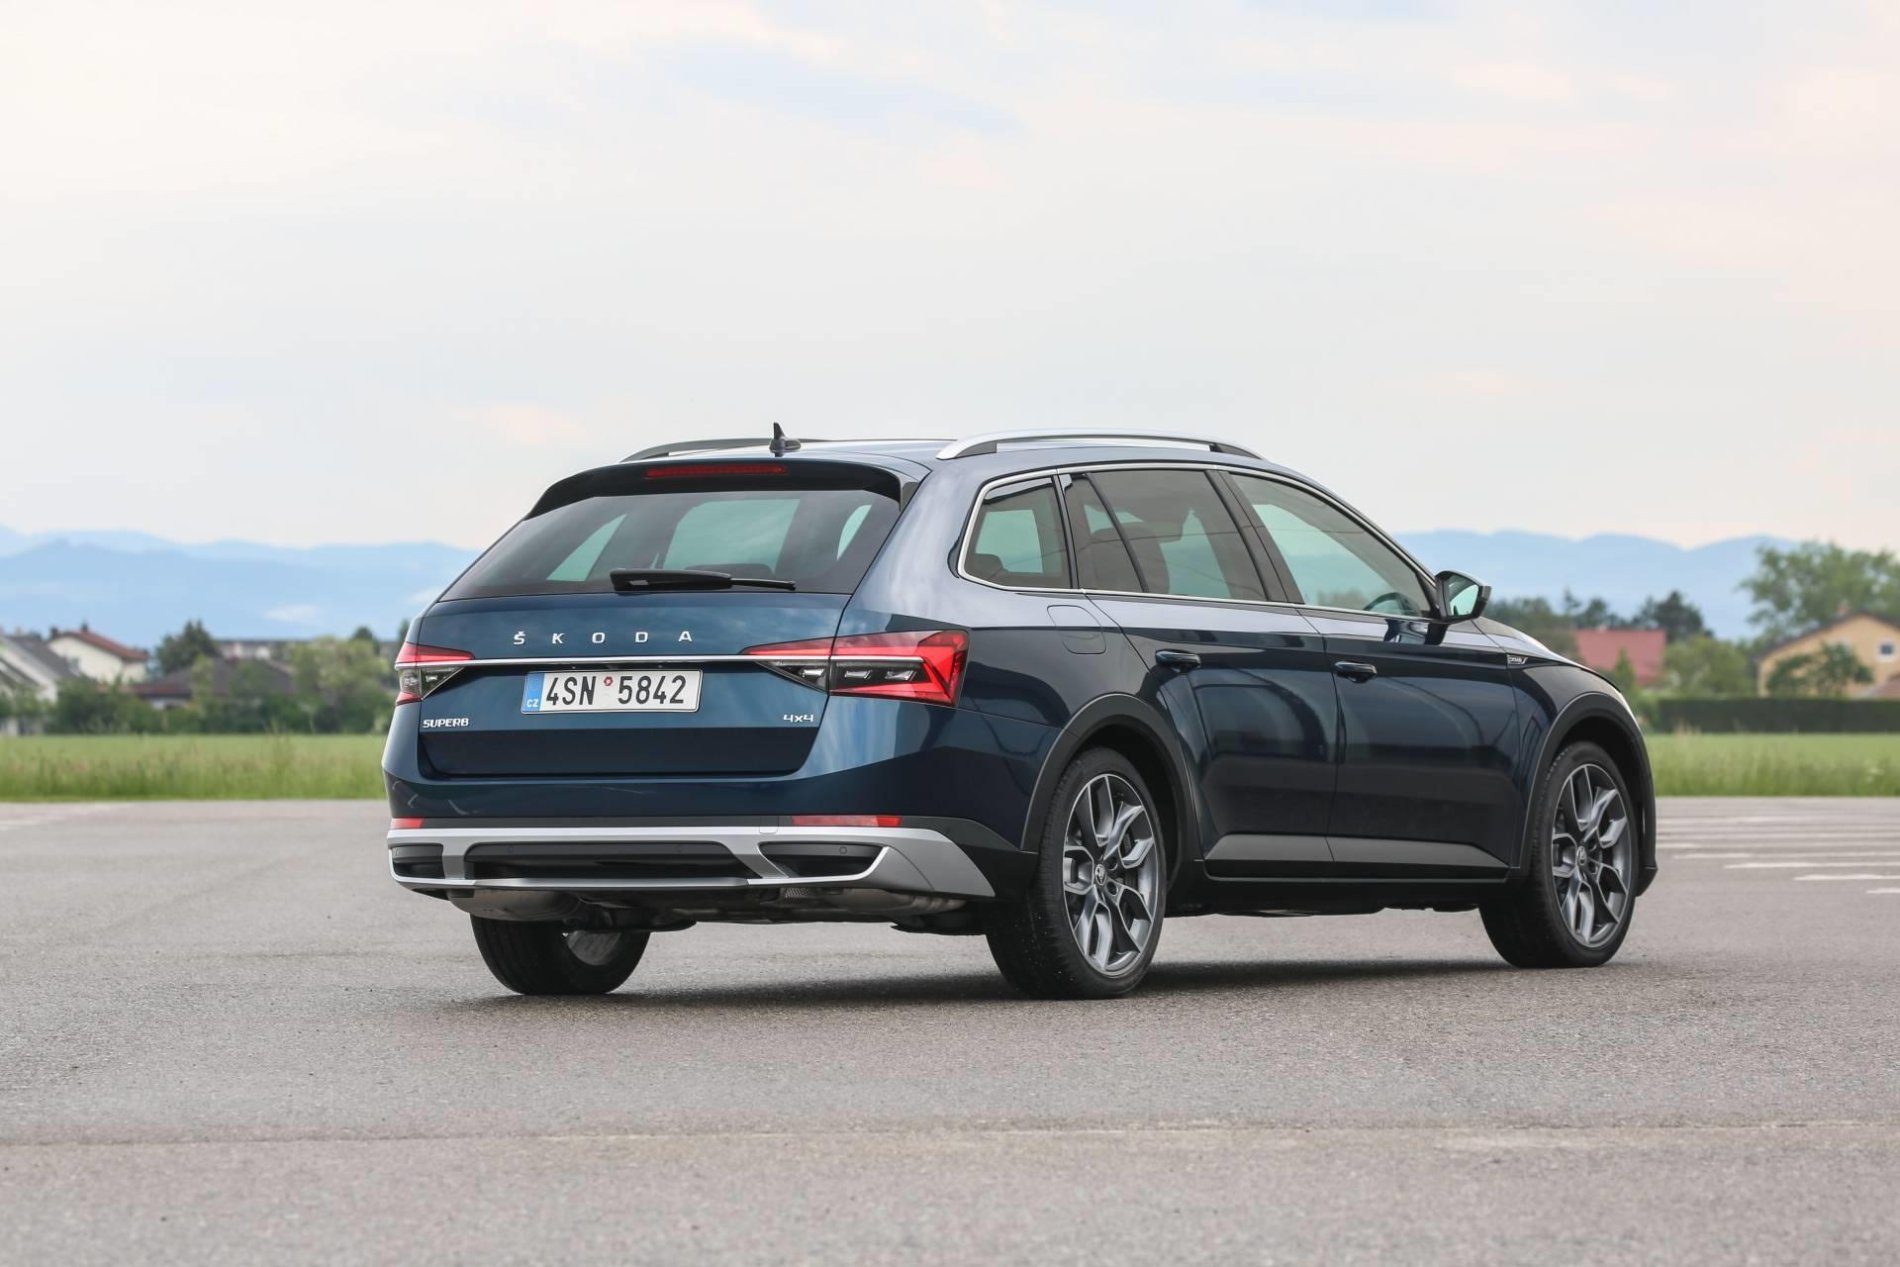 Skoda Superb facelift - Skoda Superb facelift